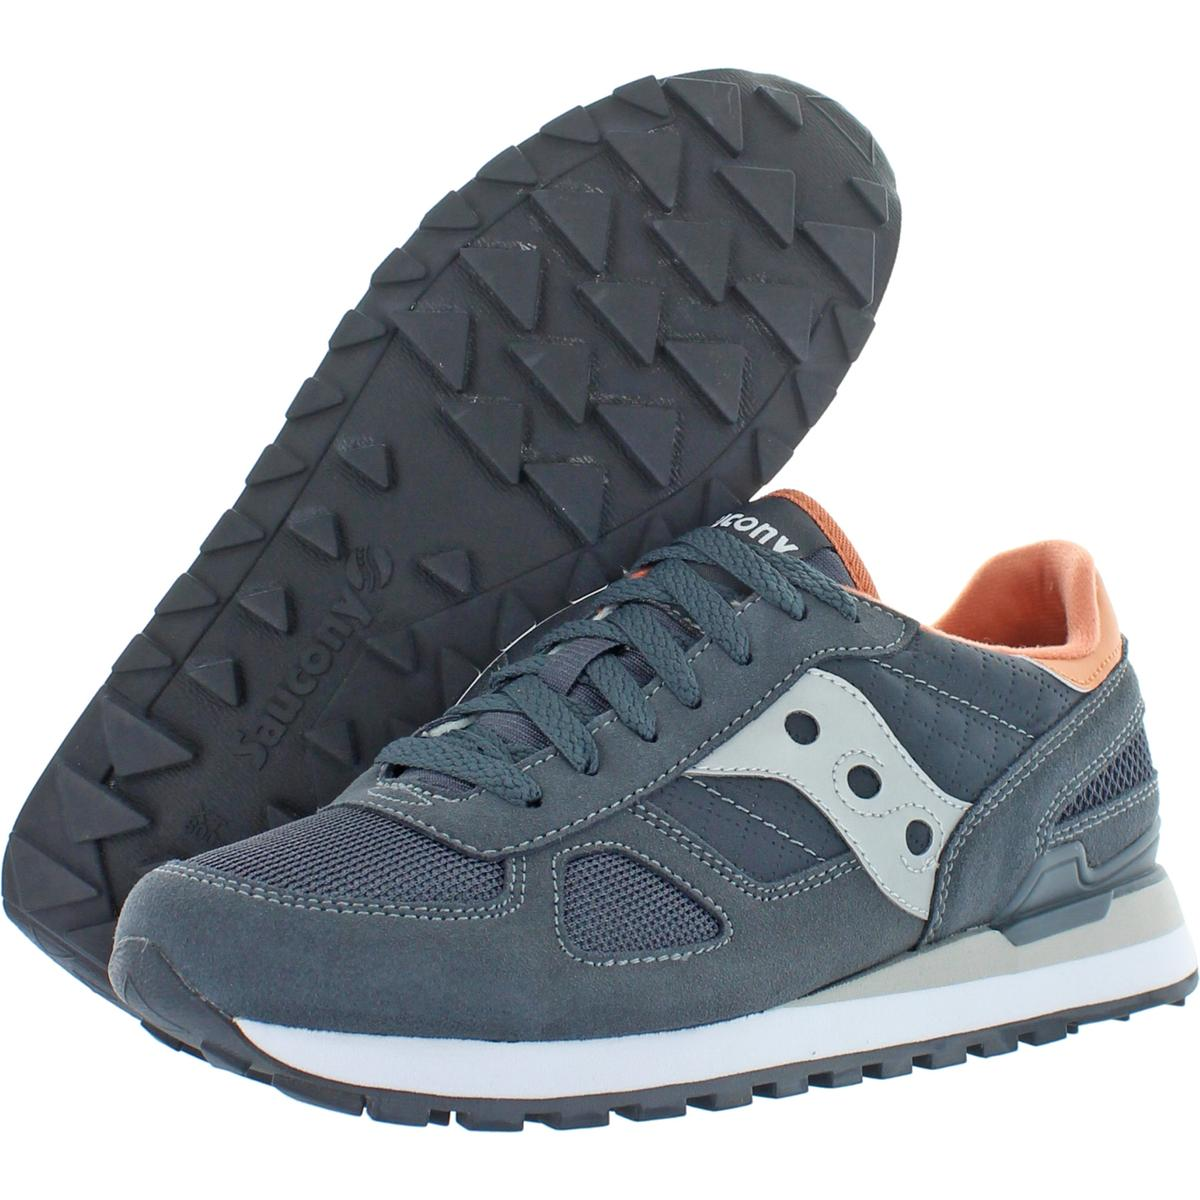 Saucony-Mens-Shadow-Original-Trainers-Suede-Comfort-Sneakers-Shoes-BHFO-0431 miniatuur 13